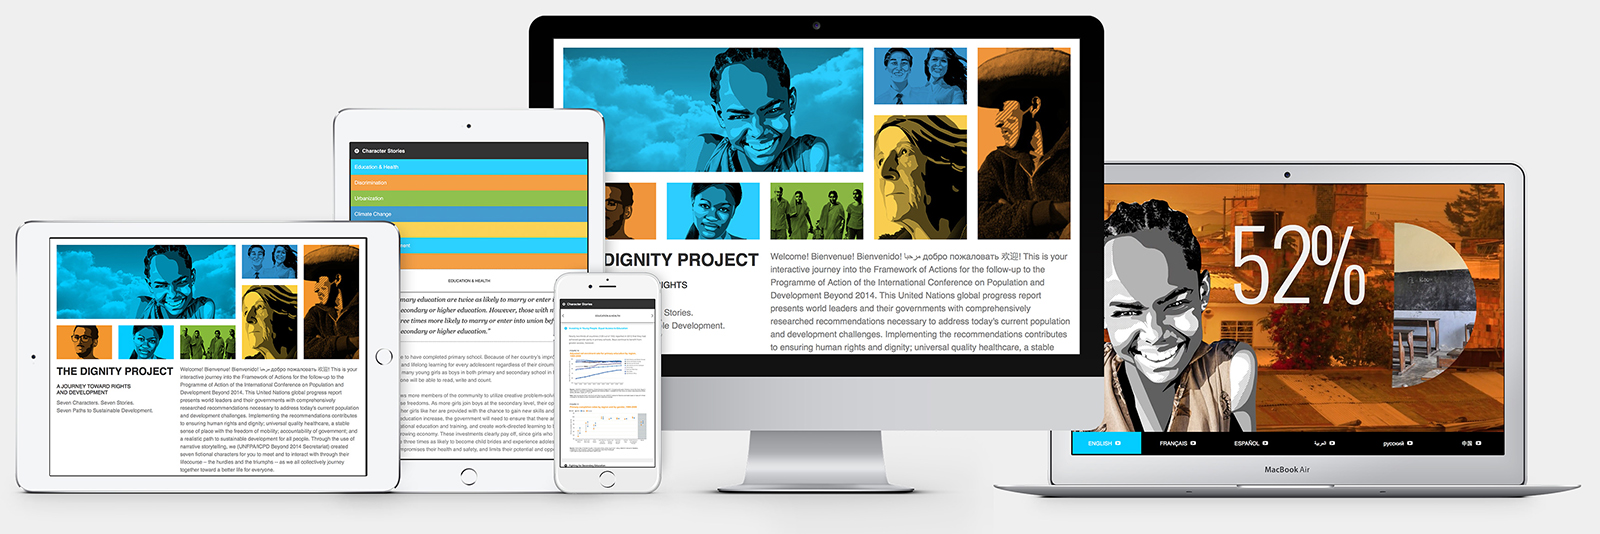 Responsive website design for I.C.P.D. U.N.F.P.A The Dignity Project